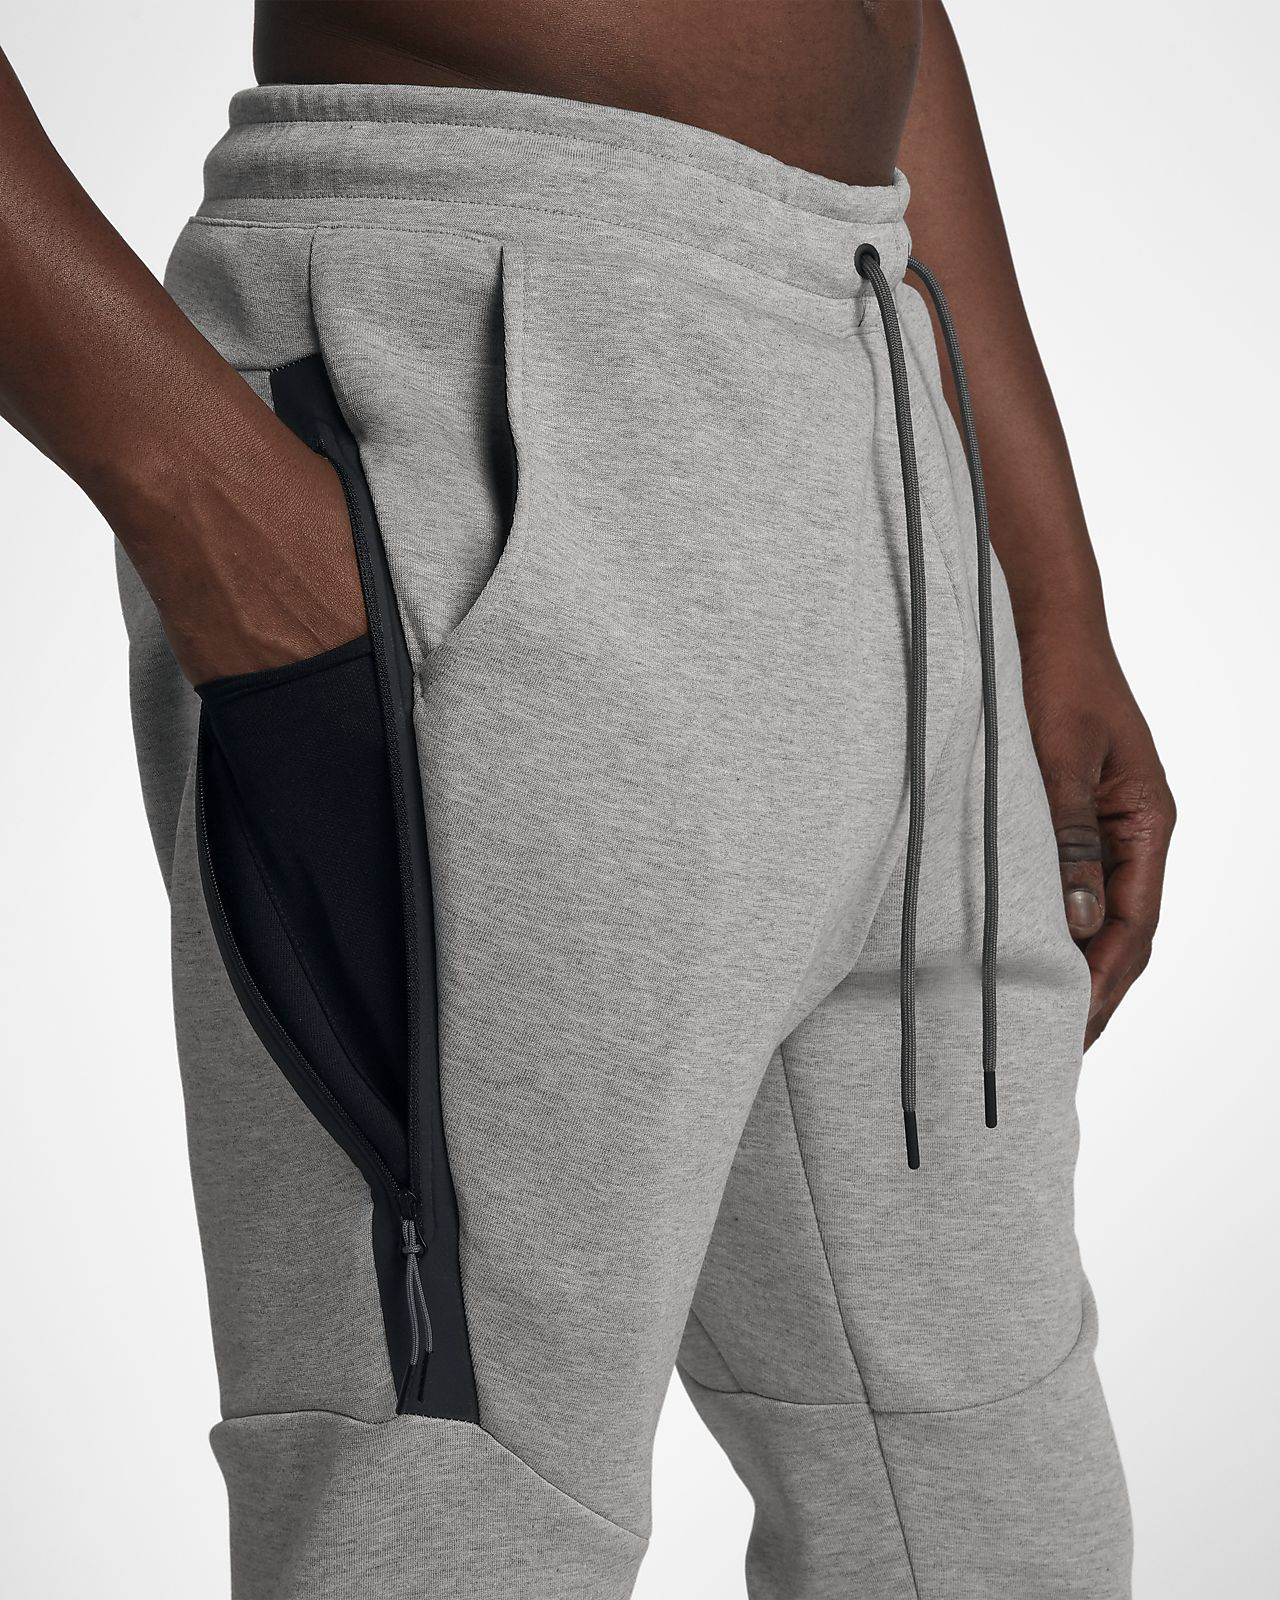 ee96434d564a3 Nike Sportswear Tech Fleece Men's Joggers. Nike.com